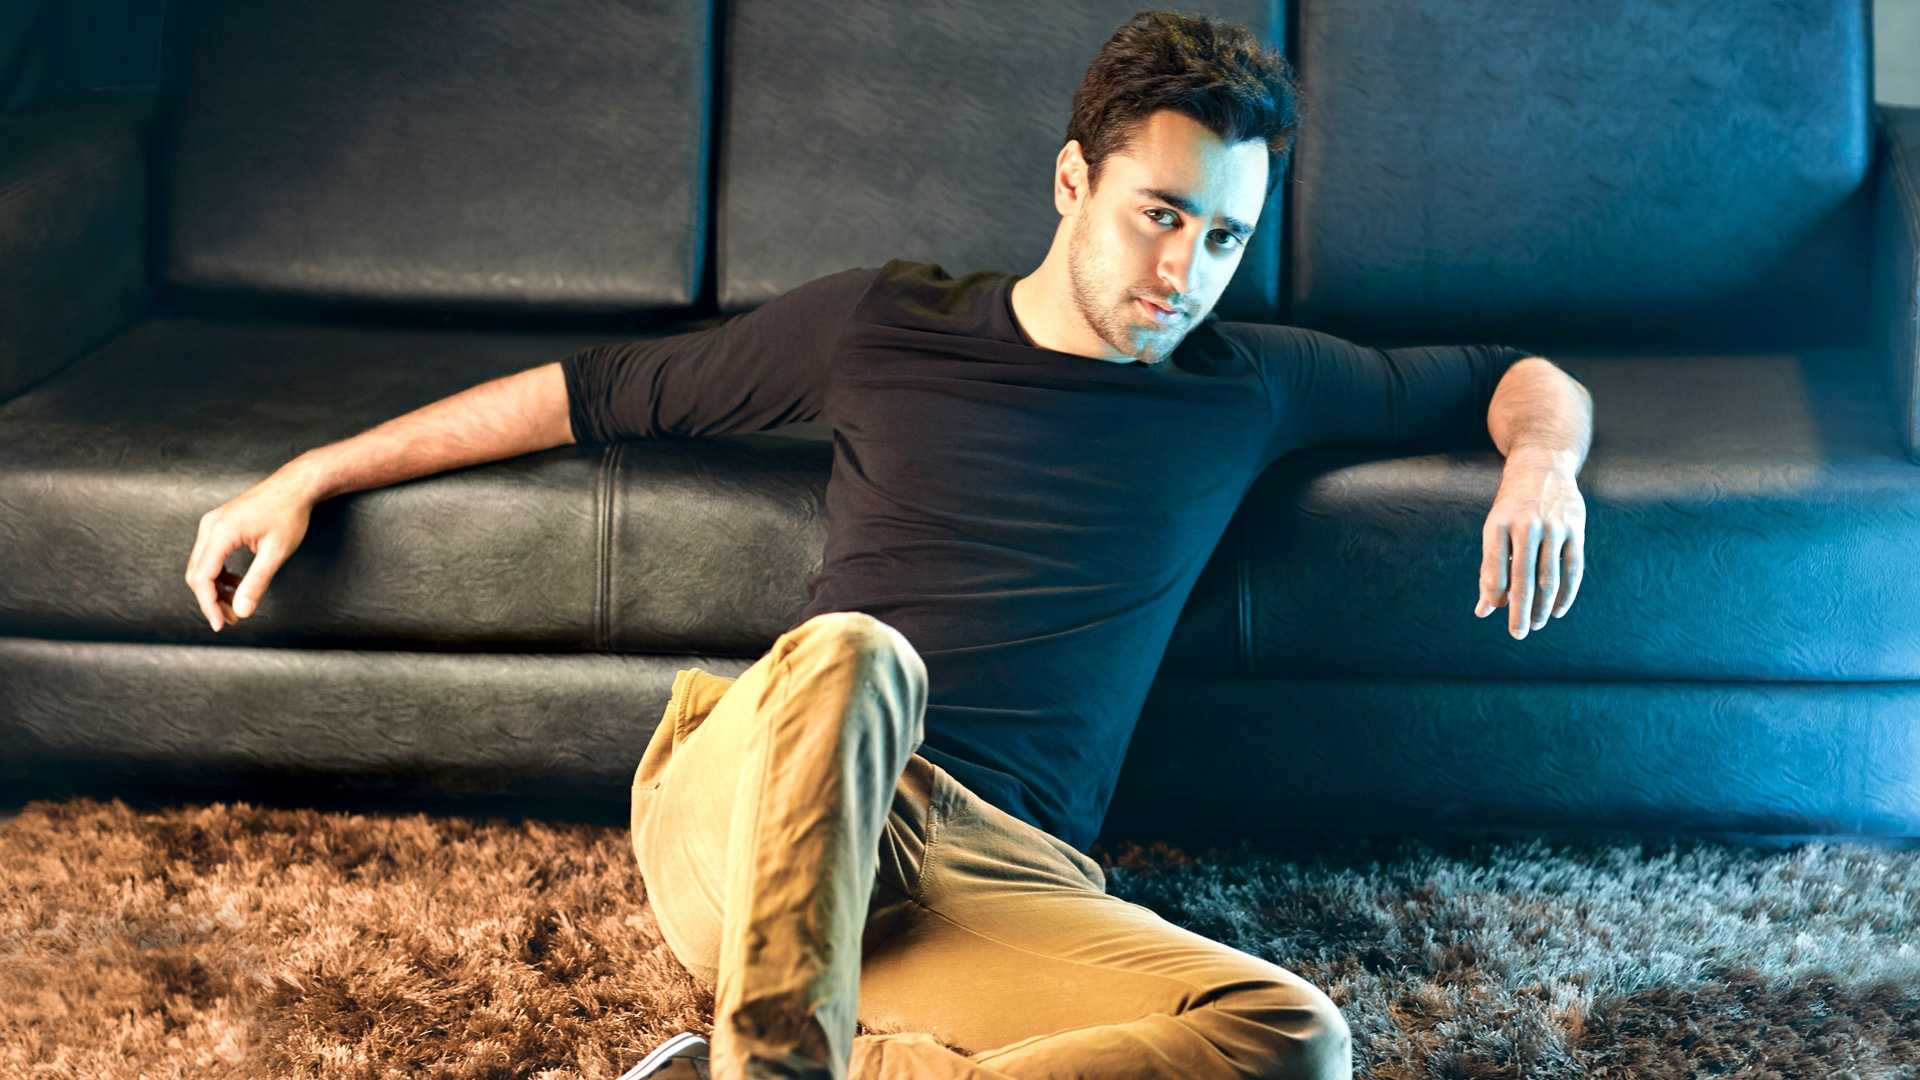 Imran Khan Handsome Bollywood Actor Wallpapers